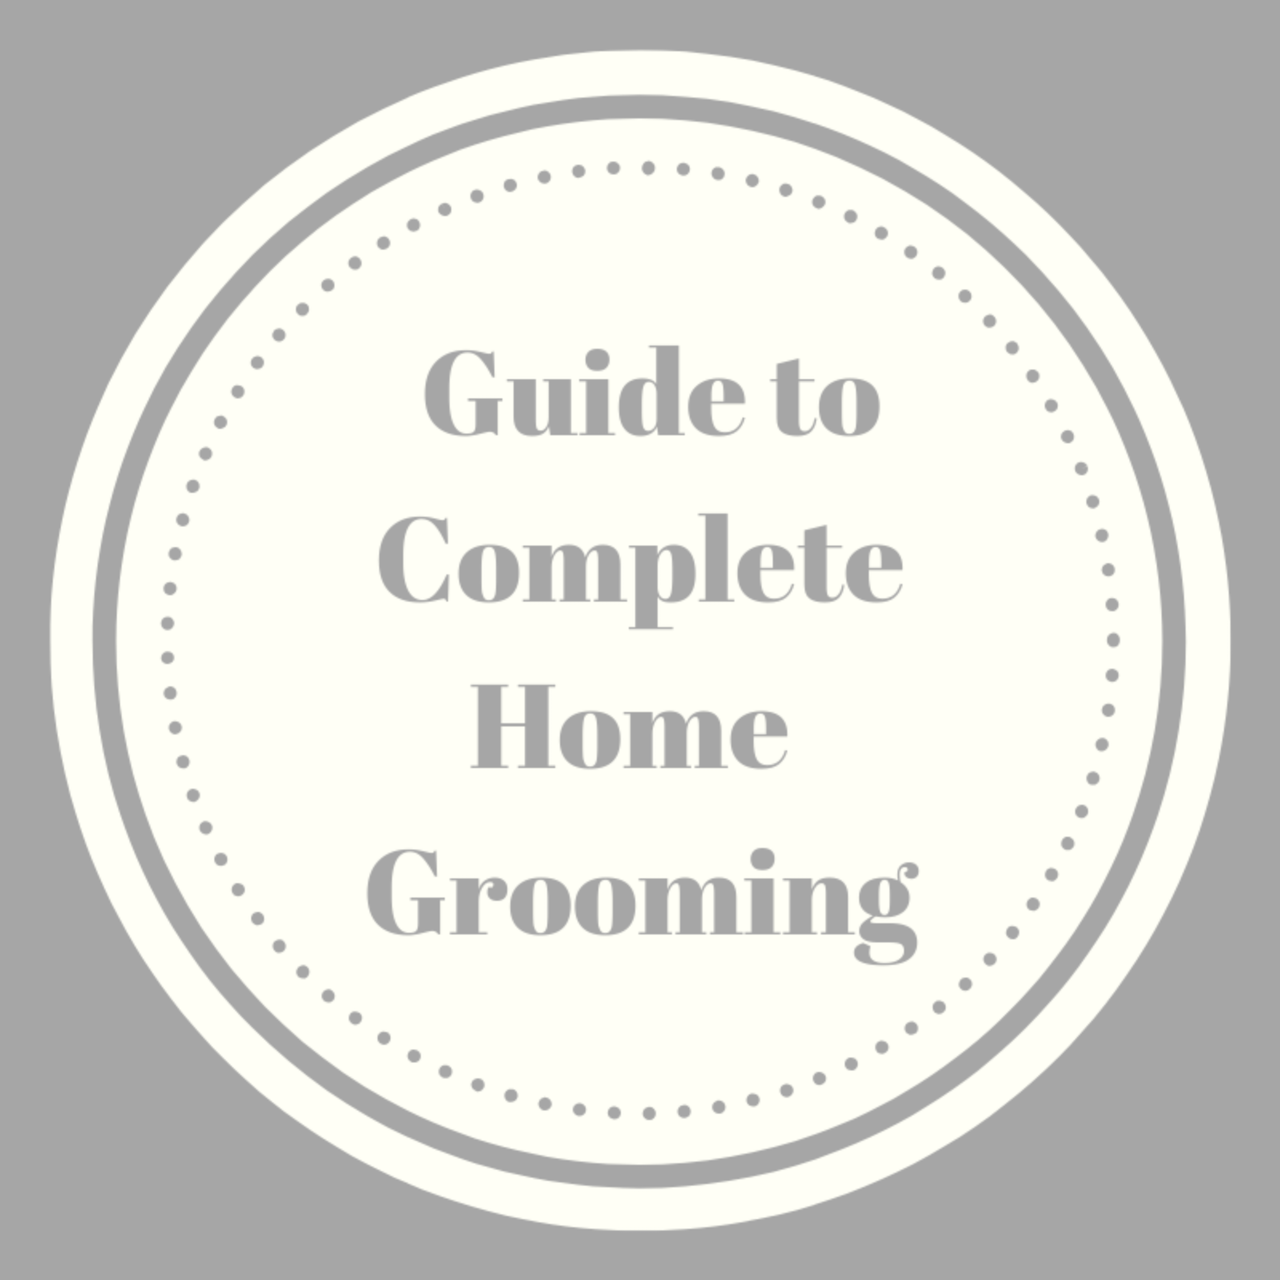 Guide to Complete Home Grooming  (includes maintenance guide)